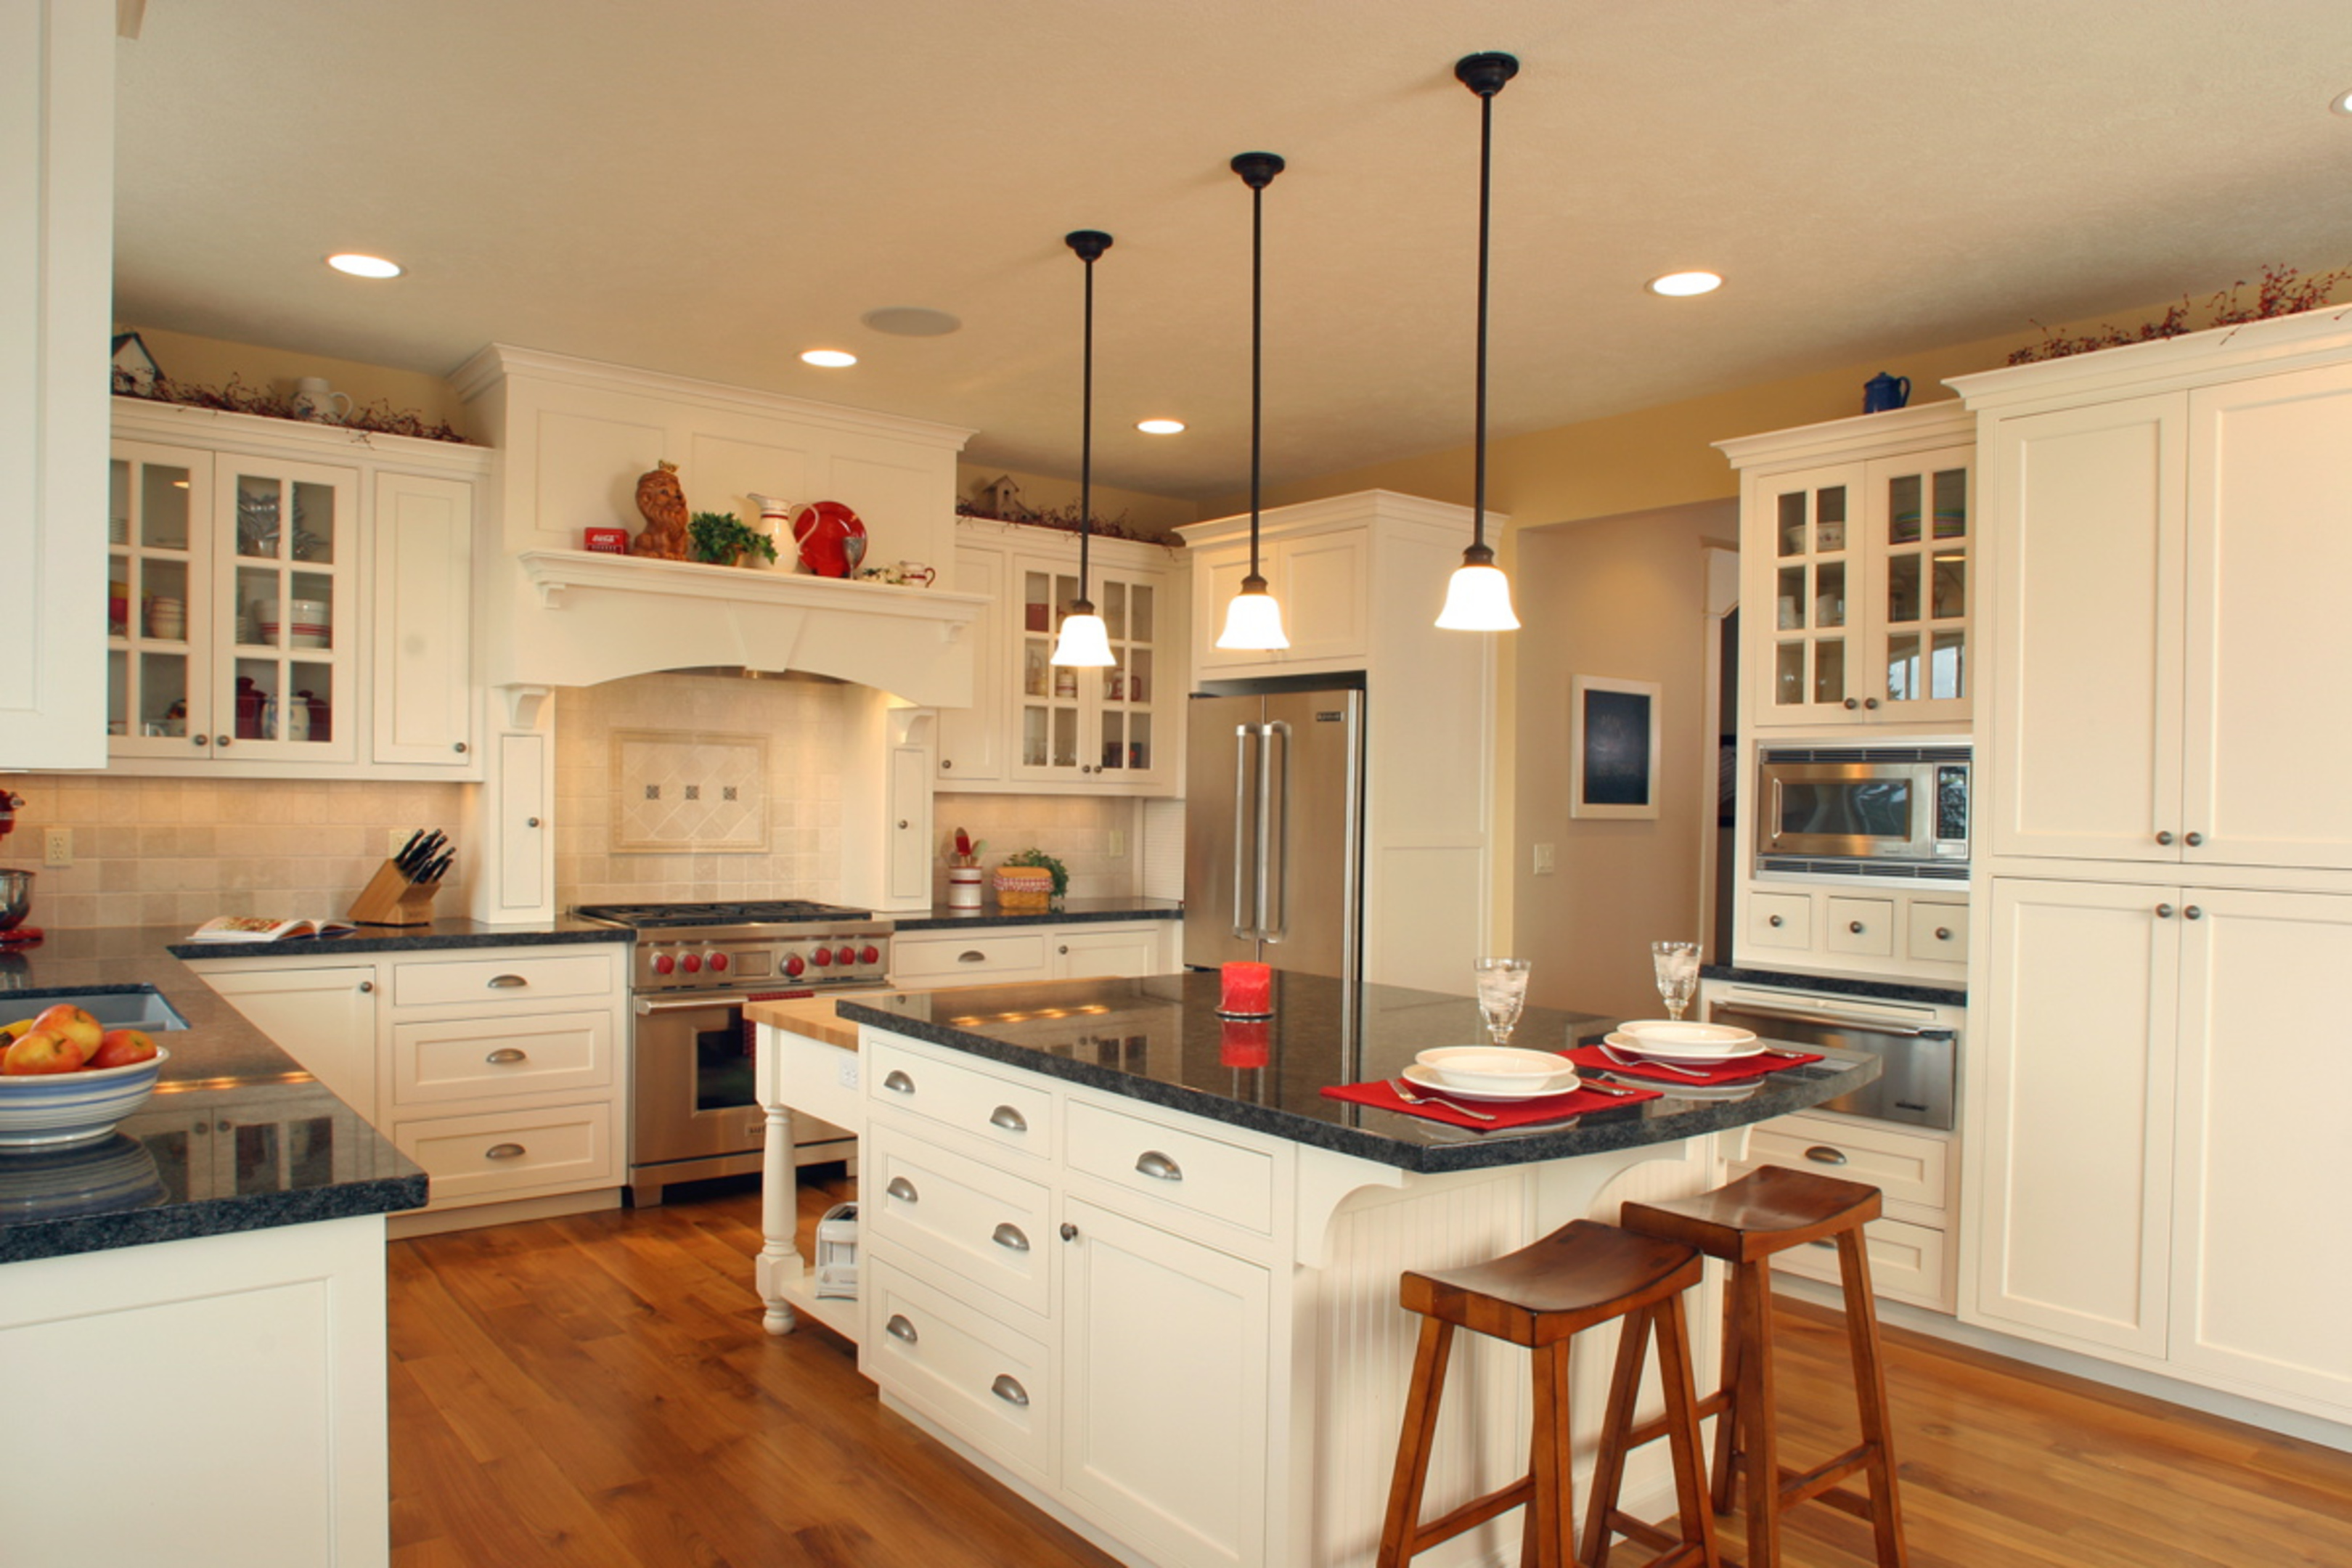 Kitchen  craftsman style  painted  recessed panel  flush mount  glass grid doors  wood hood  butcher block top  turned posts   legs  overhang on the end